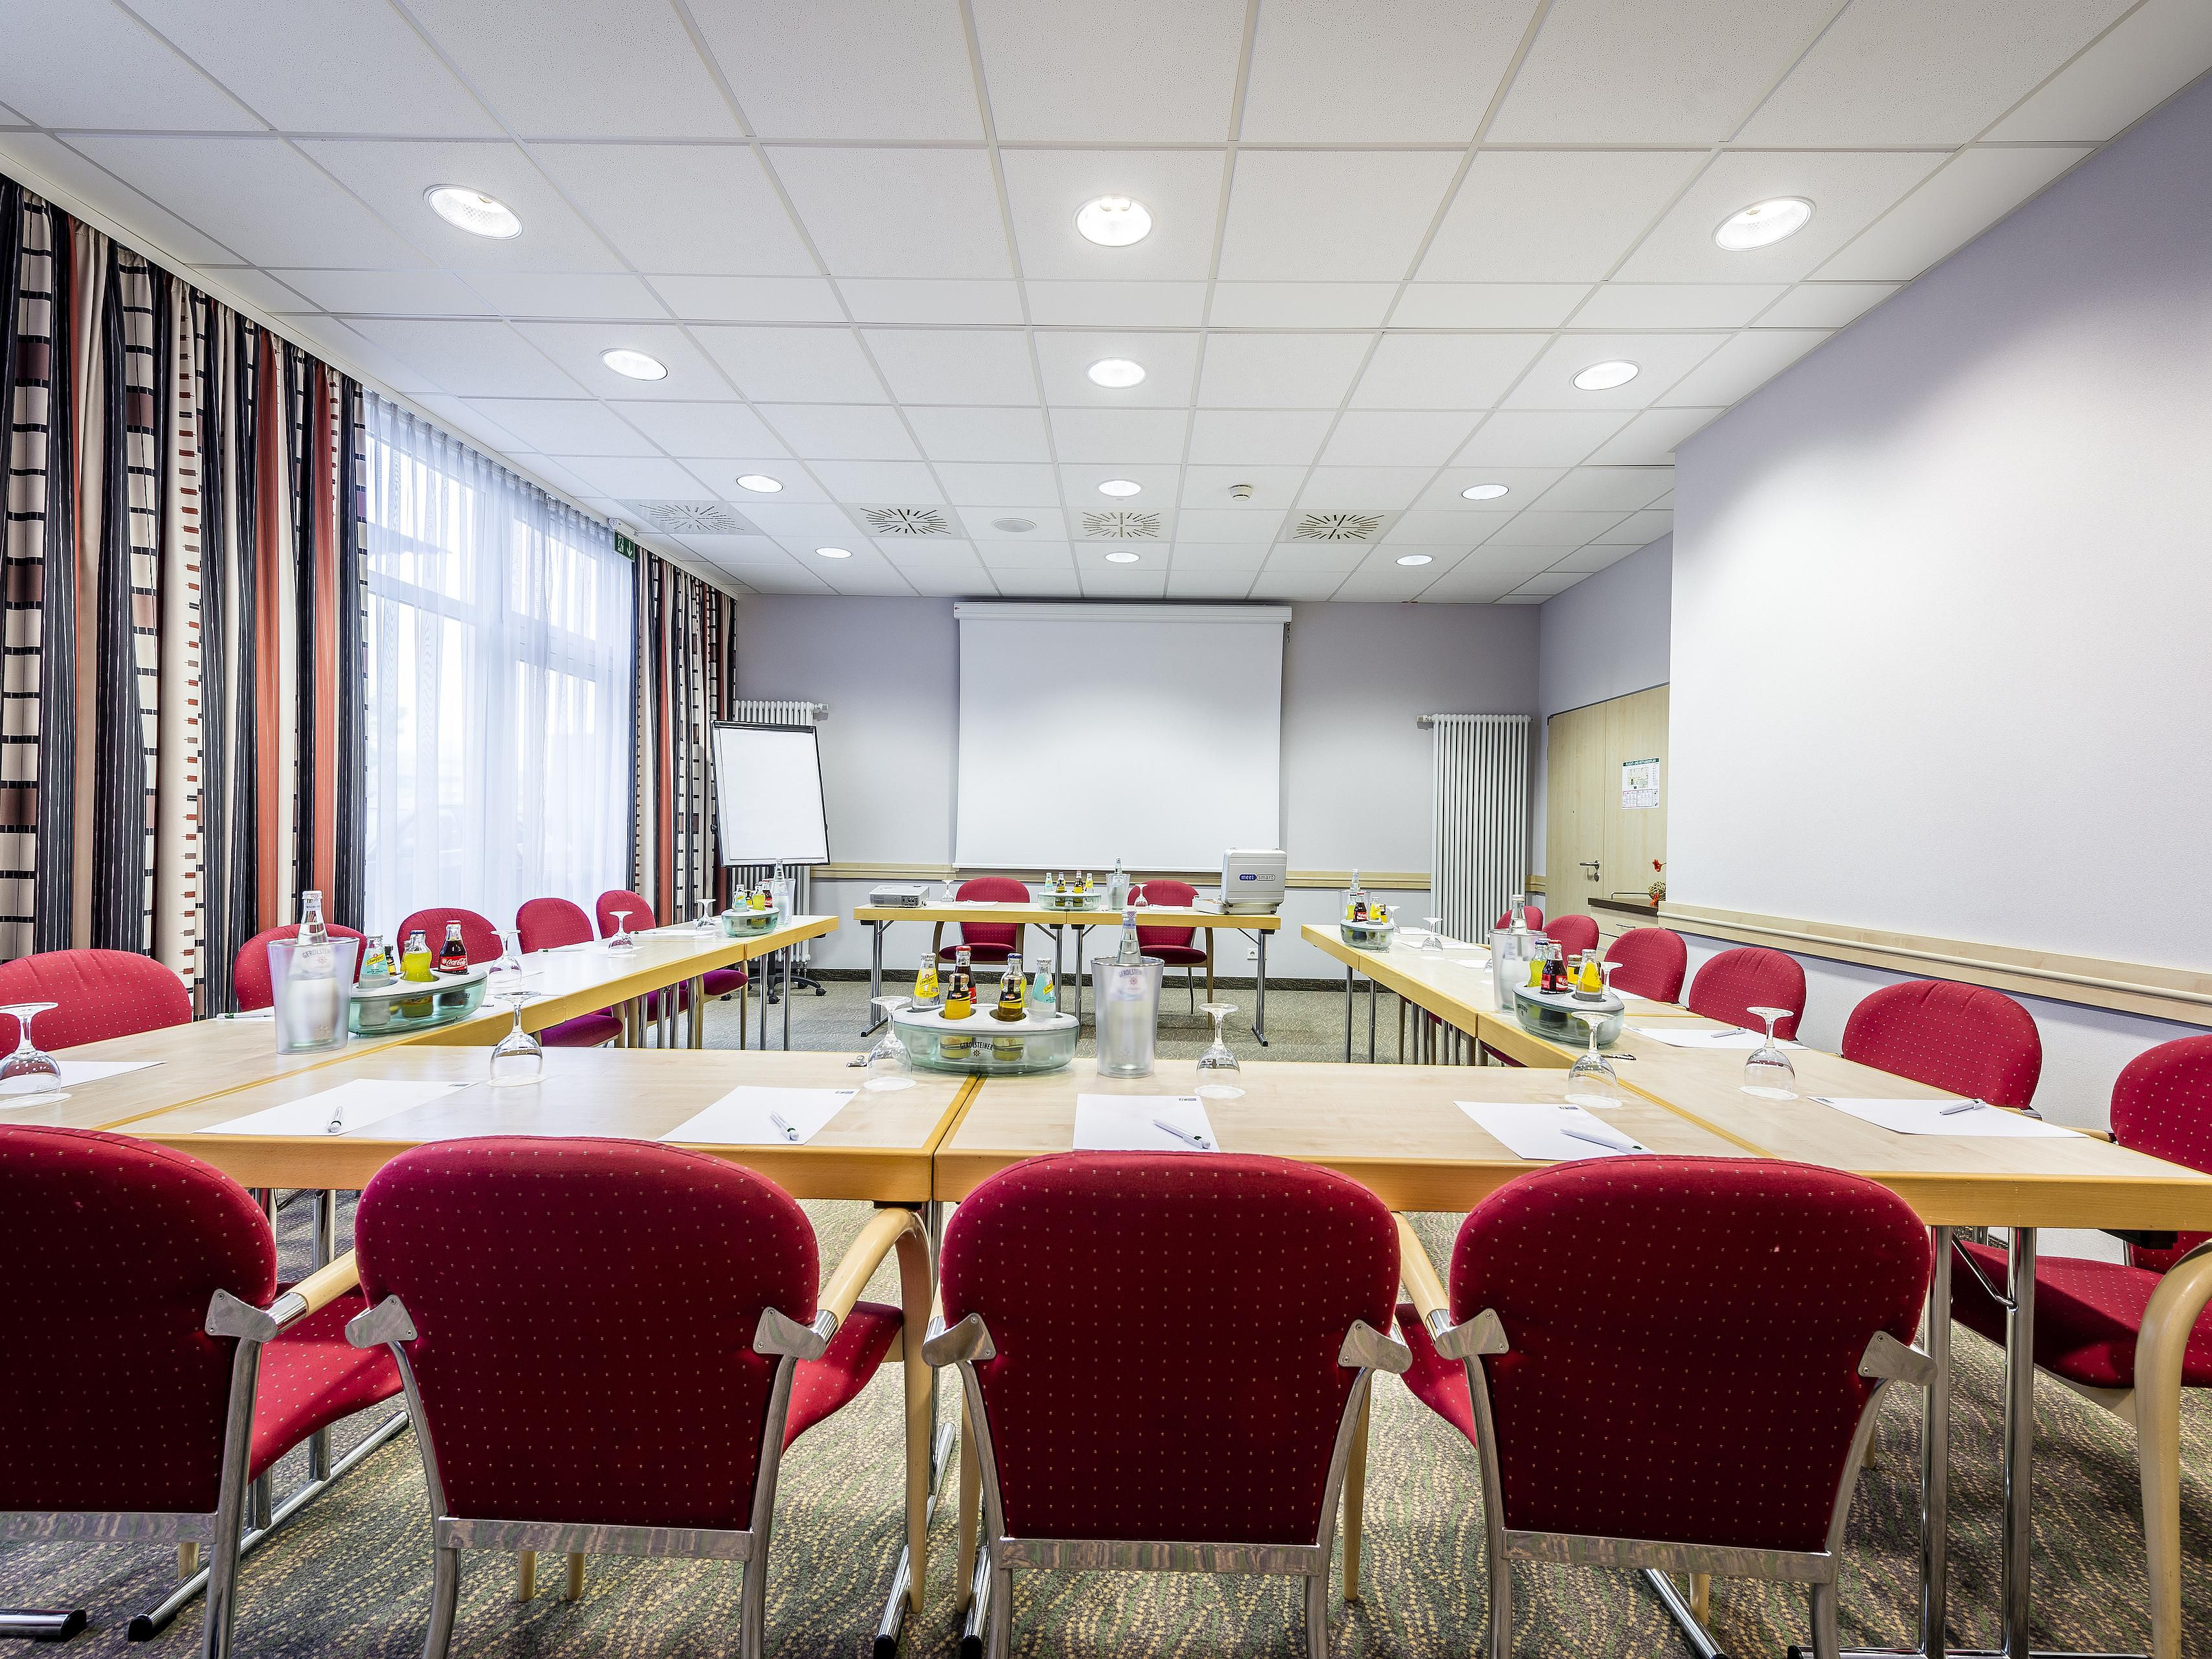 A good place to meet: our conference room